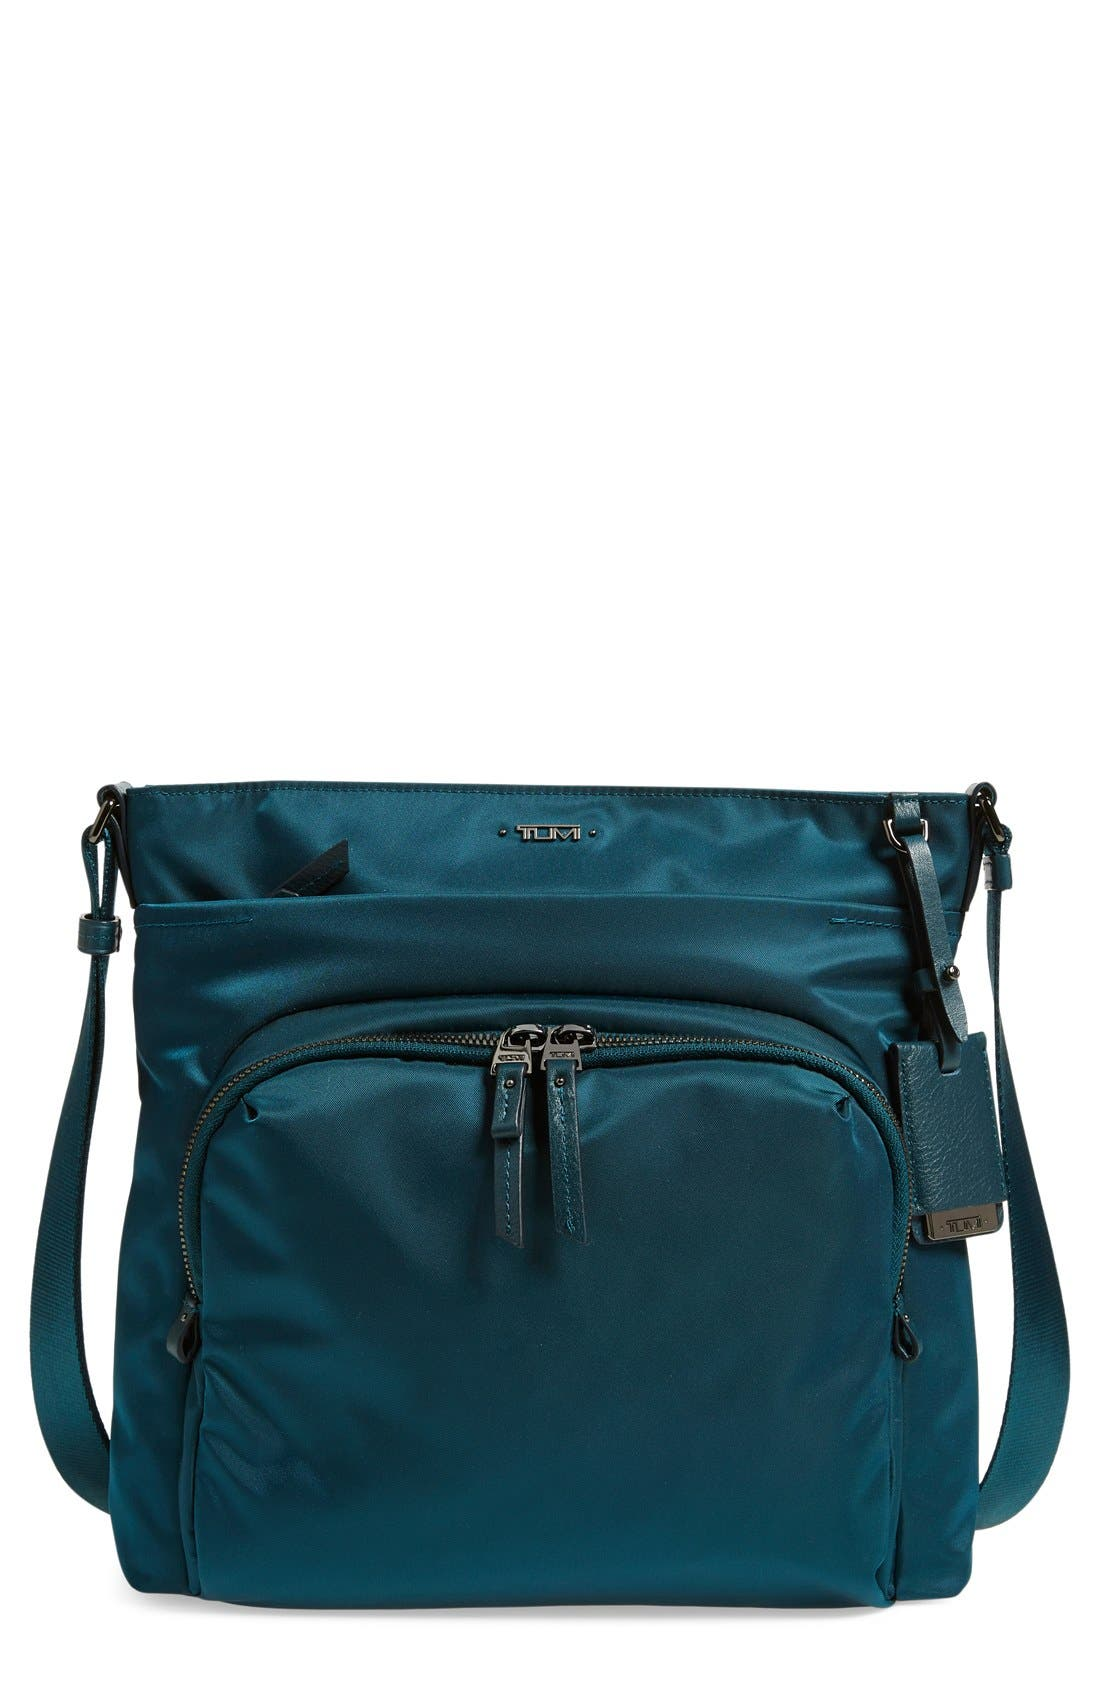 Main Image - Tumi 'Voyageur - Capri' Crossbody Bag